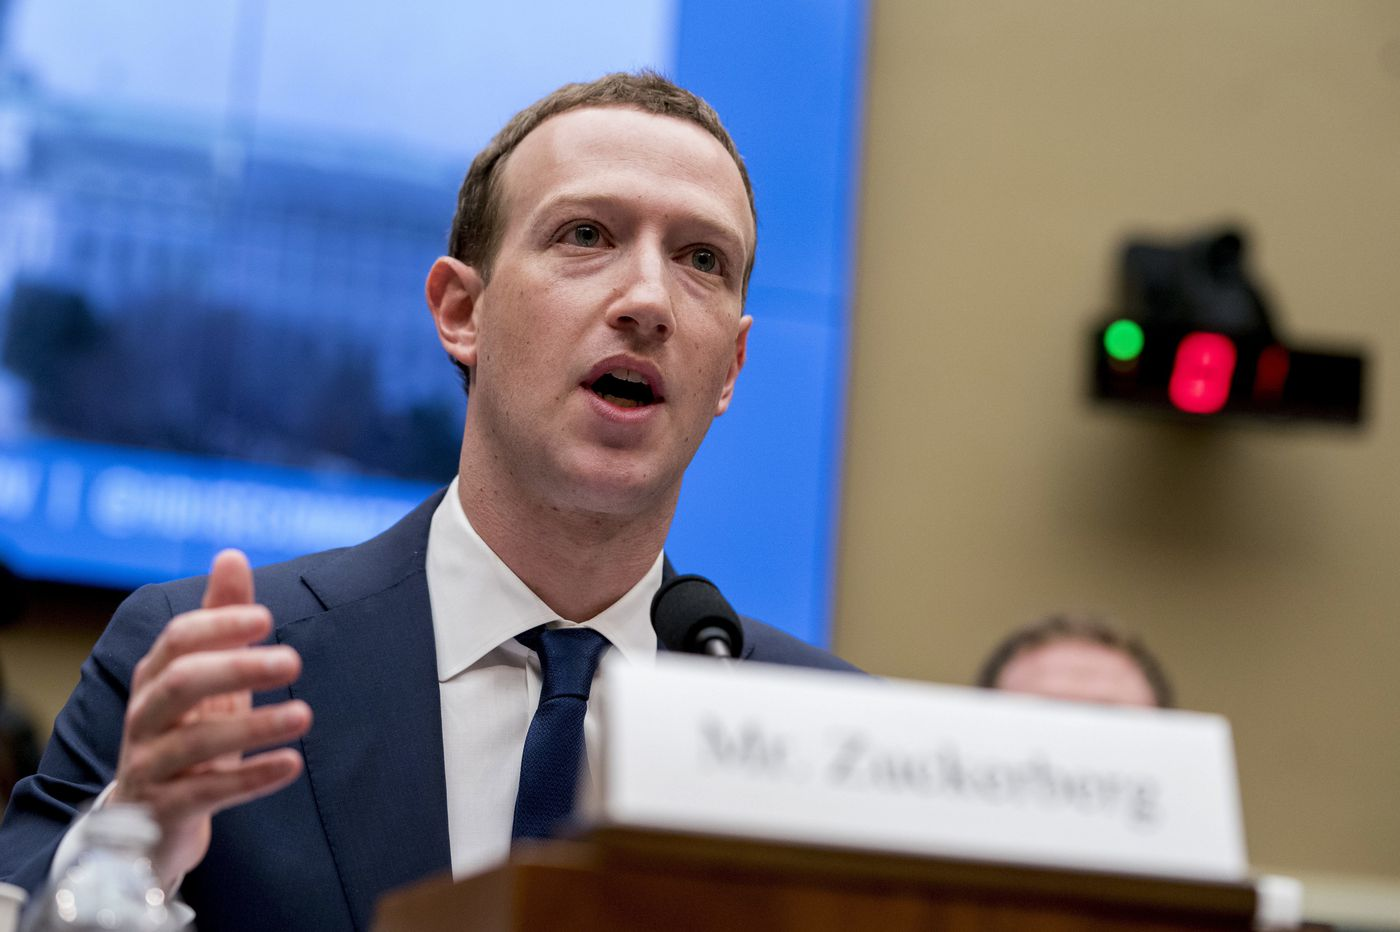 Facebook just gave up the fight against fake news | Opinion